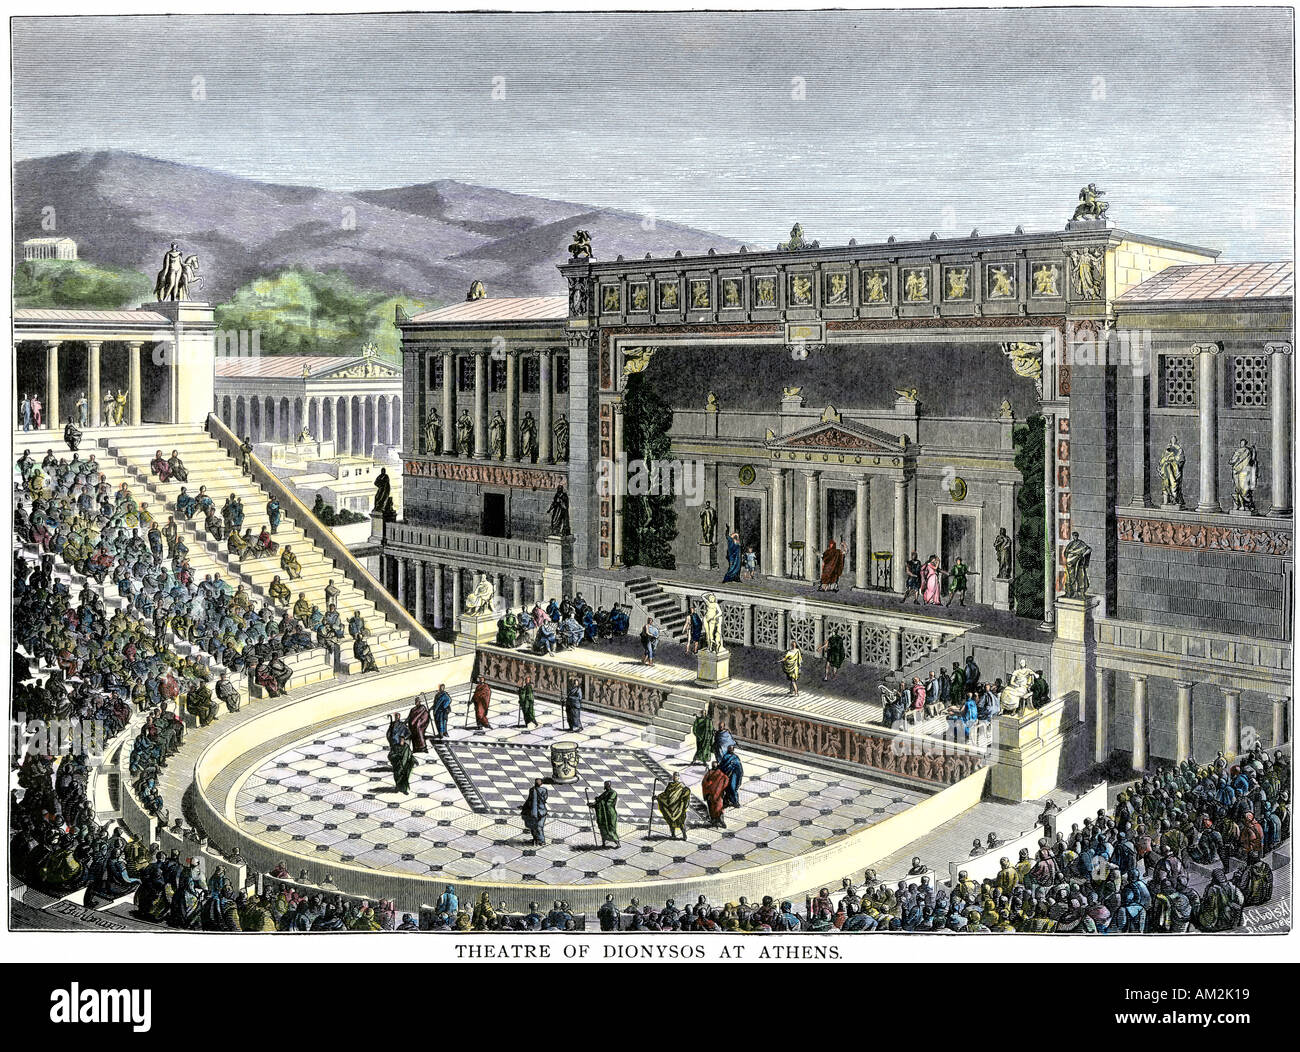 Performance at the Theatre of Dionysos in Athens ancient ... Ancient Athenians